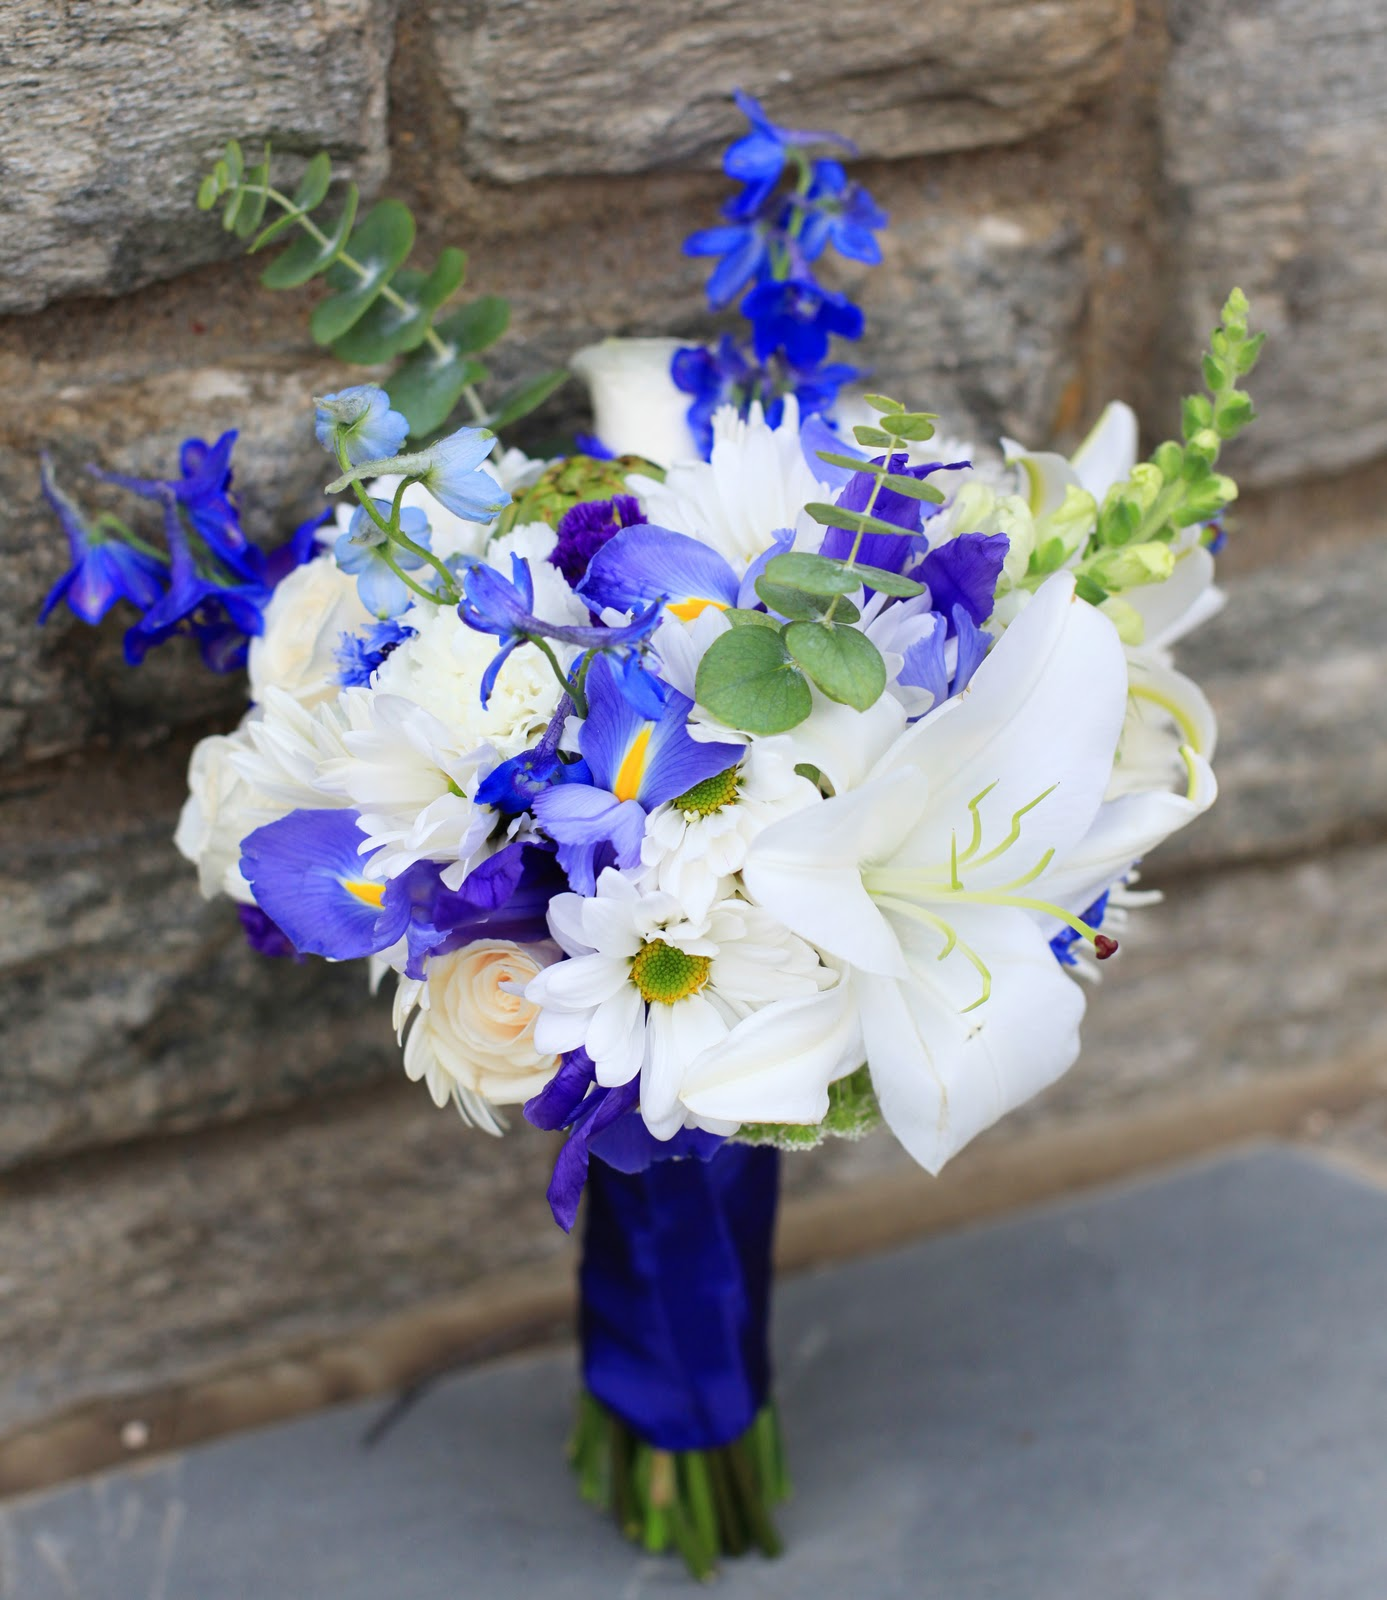 Bonnieprojects Diy Blue And White Bouquets And Boutonnieres